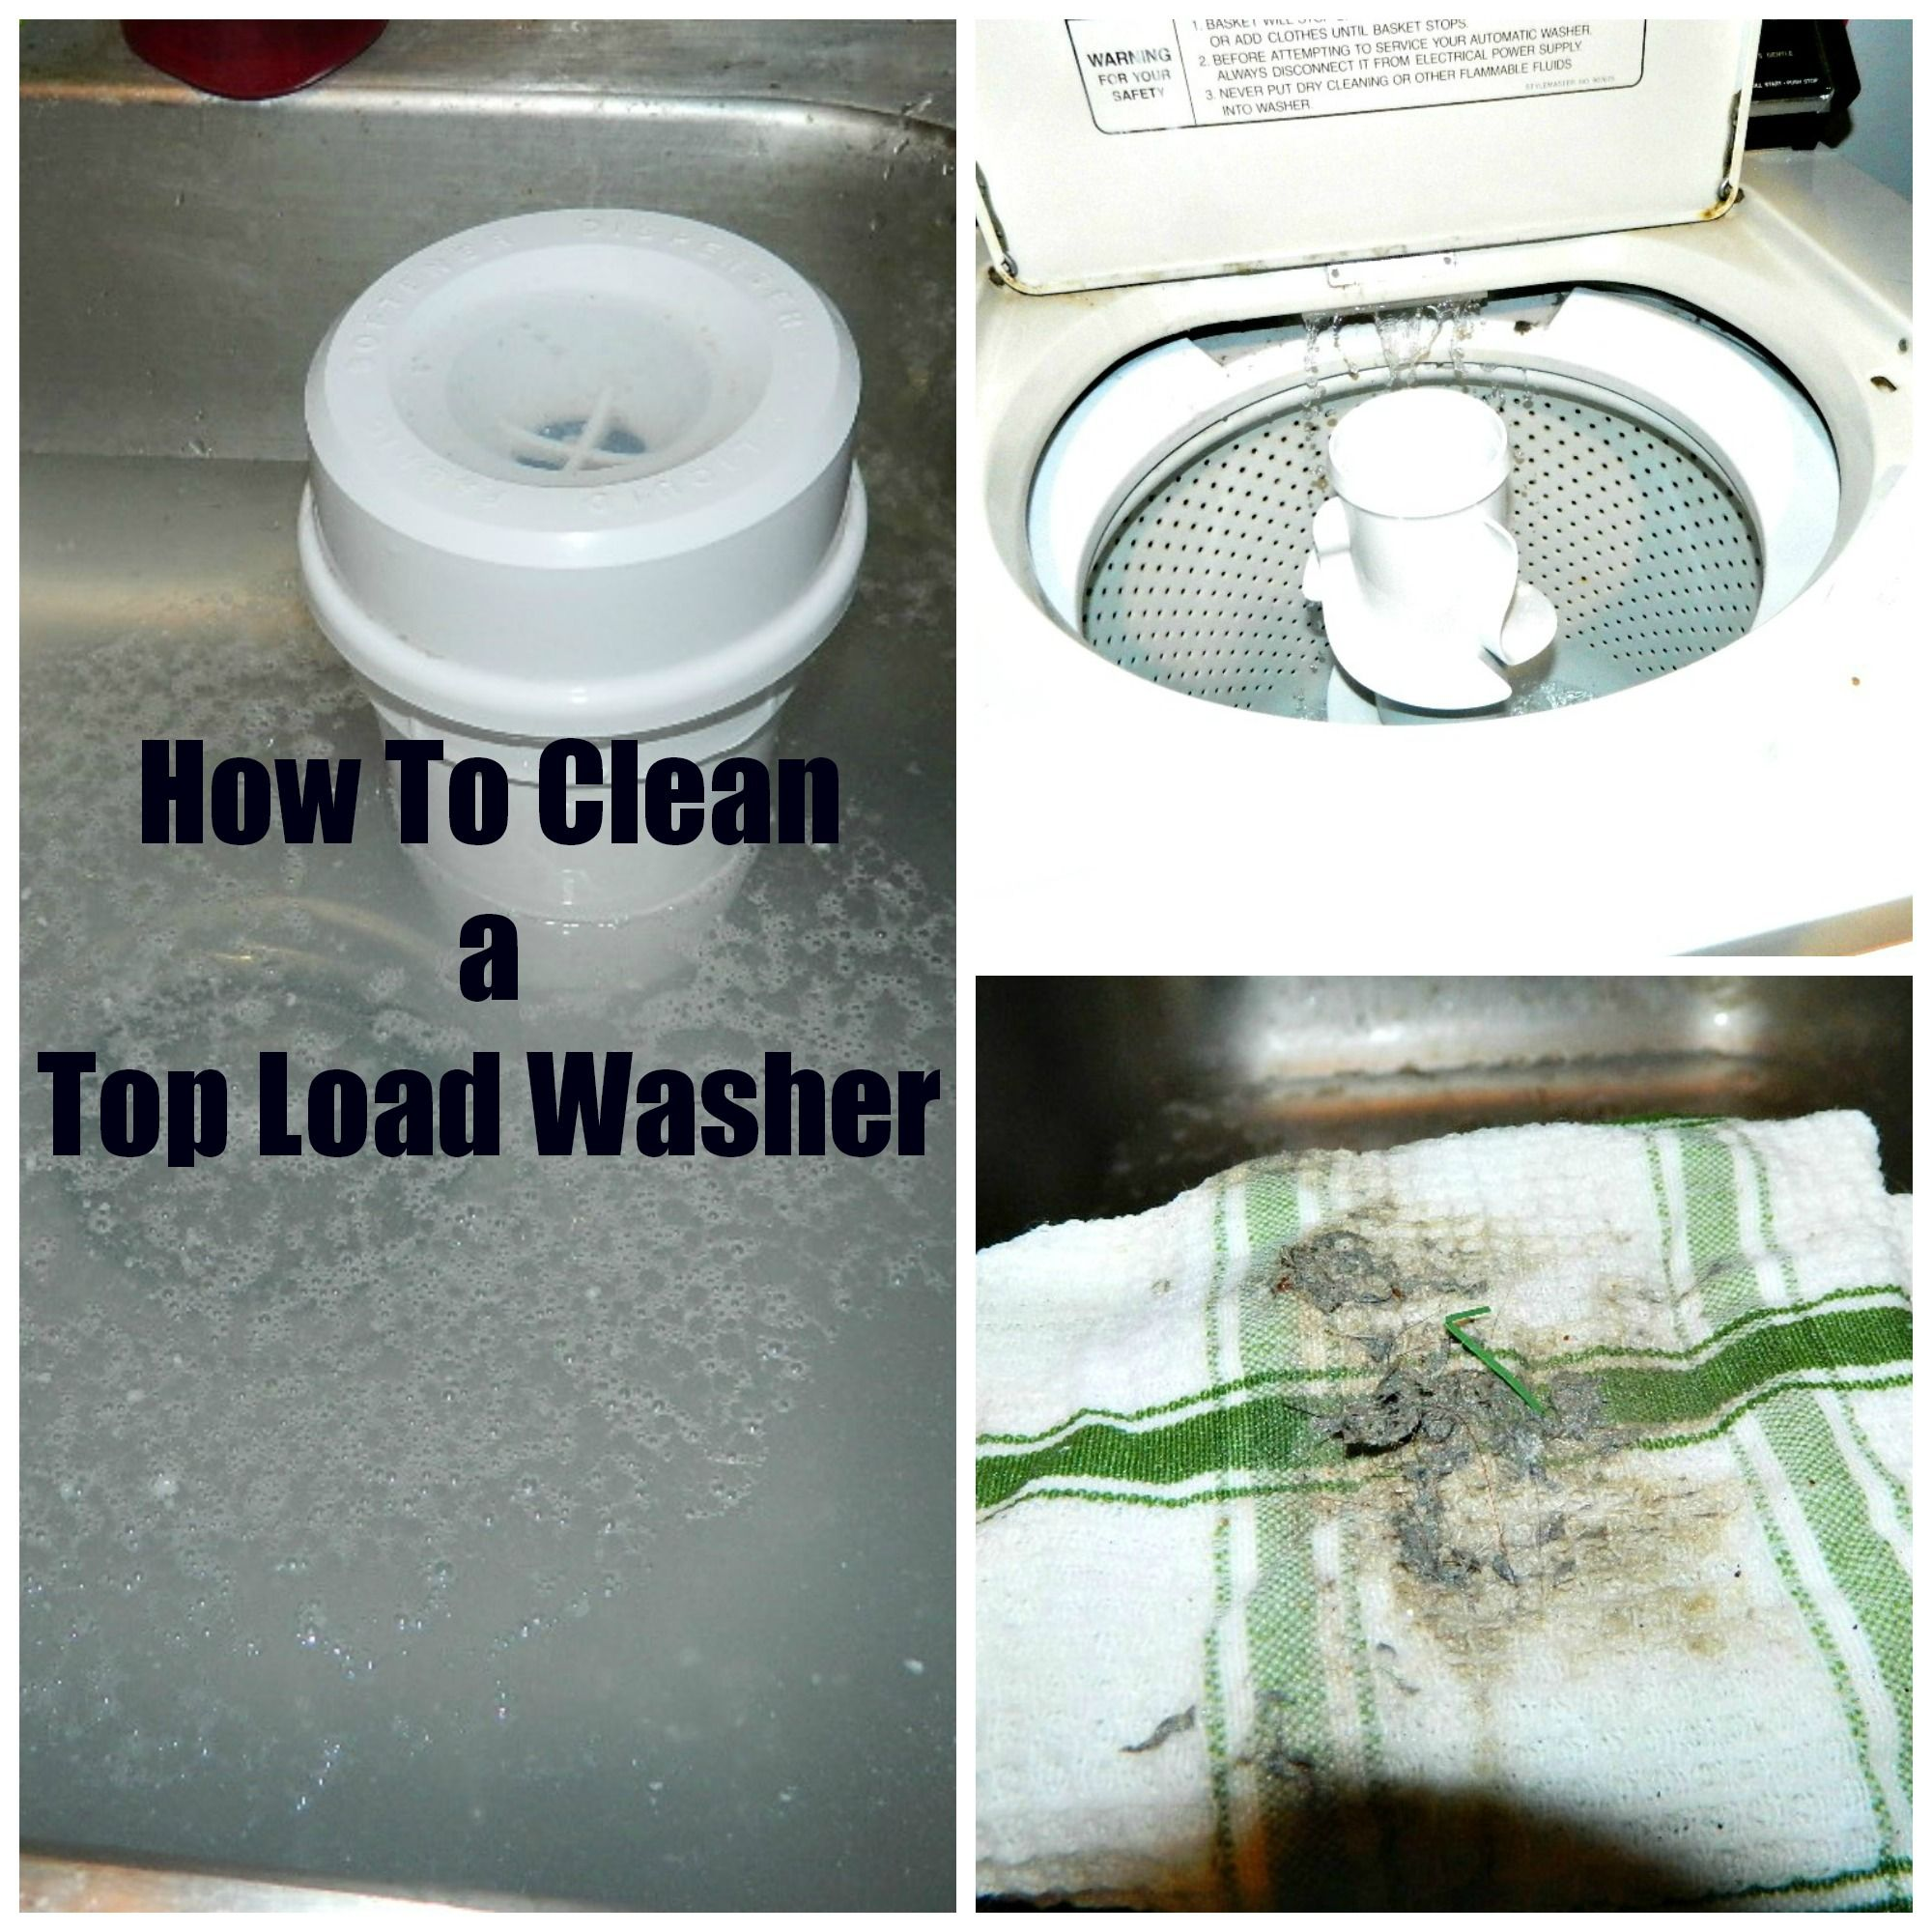 How To Clean A Top Load Washer Video You Are Supposed